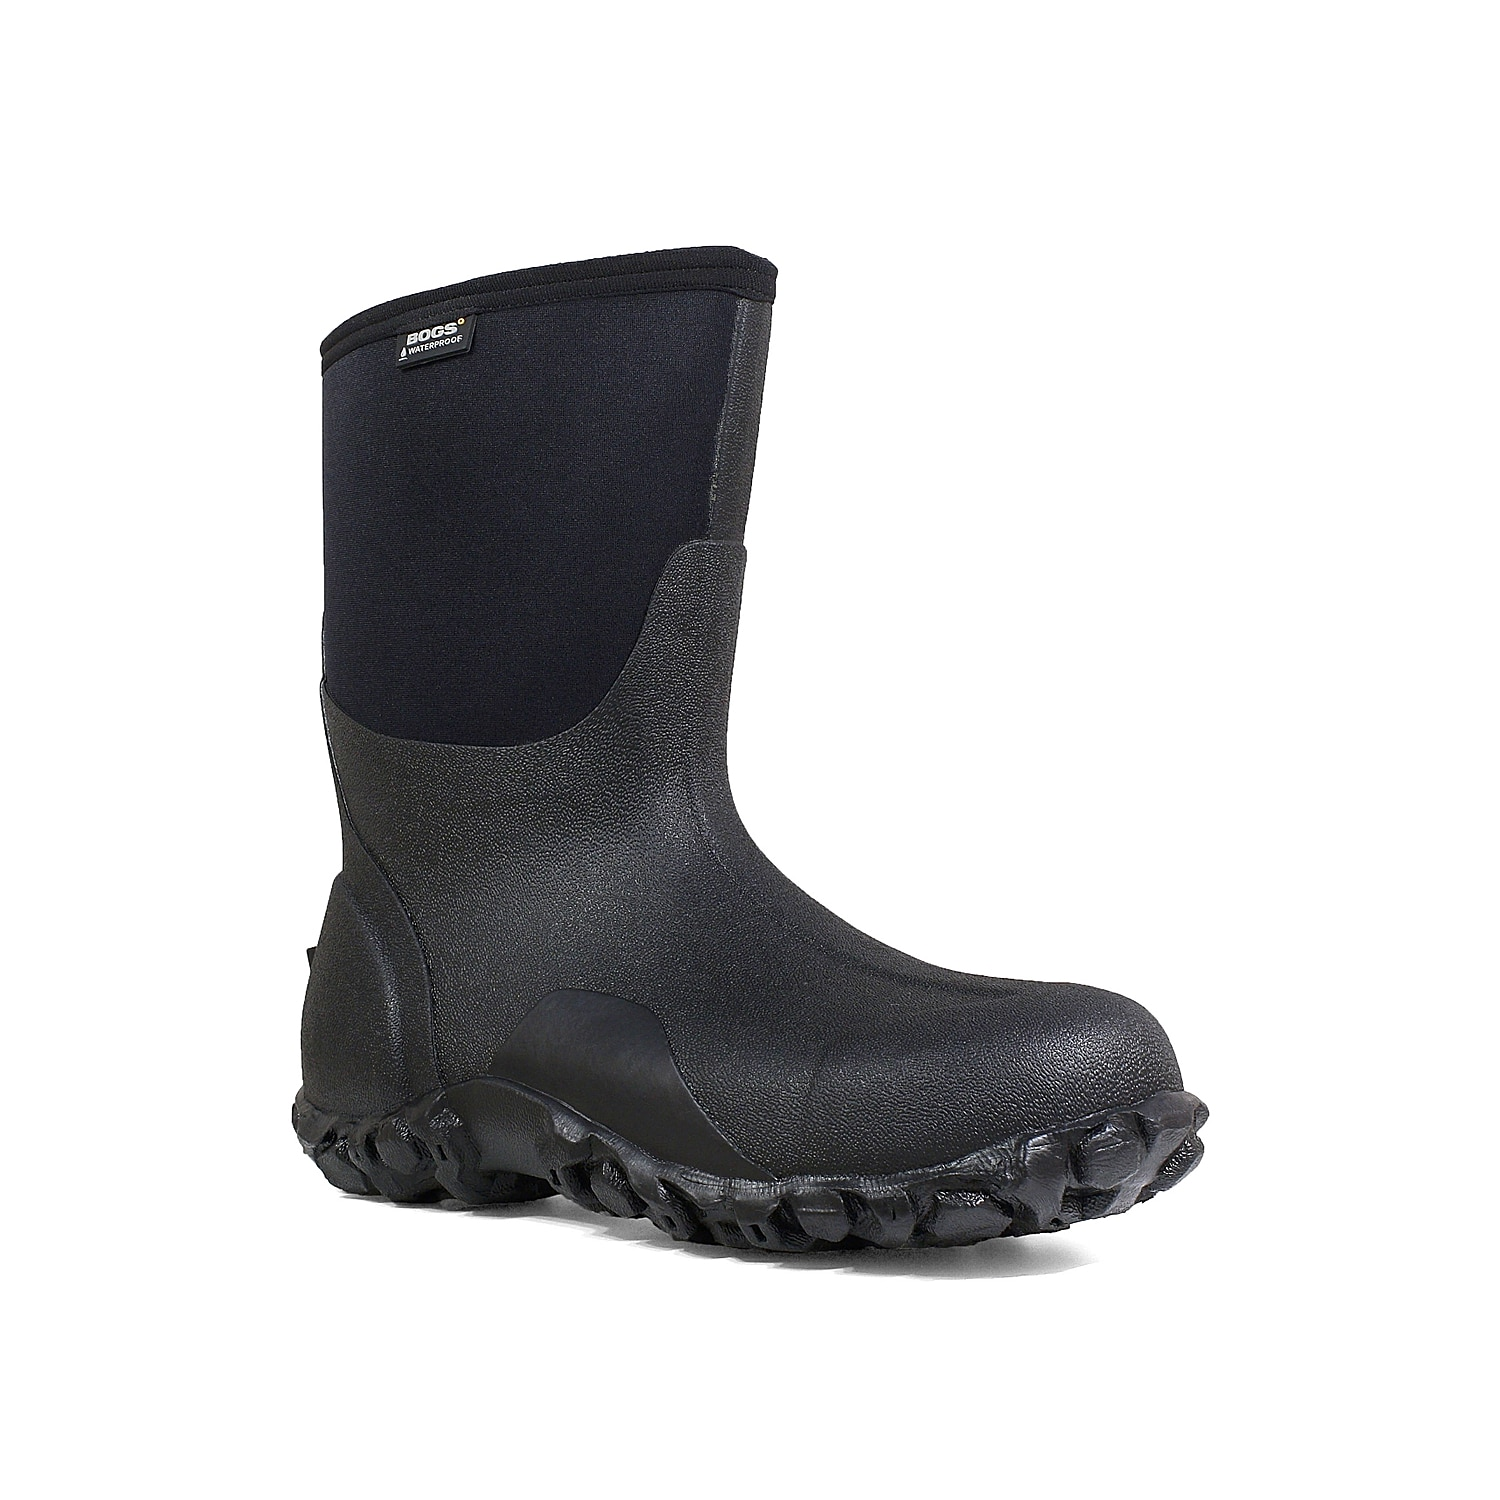 Weather won\\\'t stop you when you wear the Classic winter boots from Bogs. These comfort-rated snow boots are designed to provide excellent traction on any surface, while four way-stretch insulation and a contoured fit improve wearability.